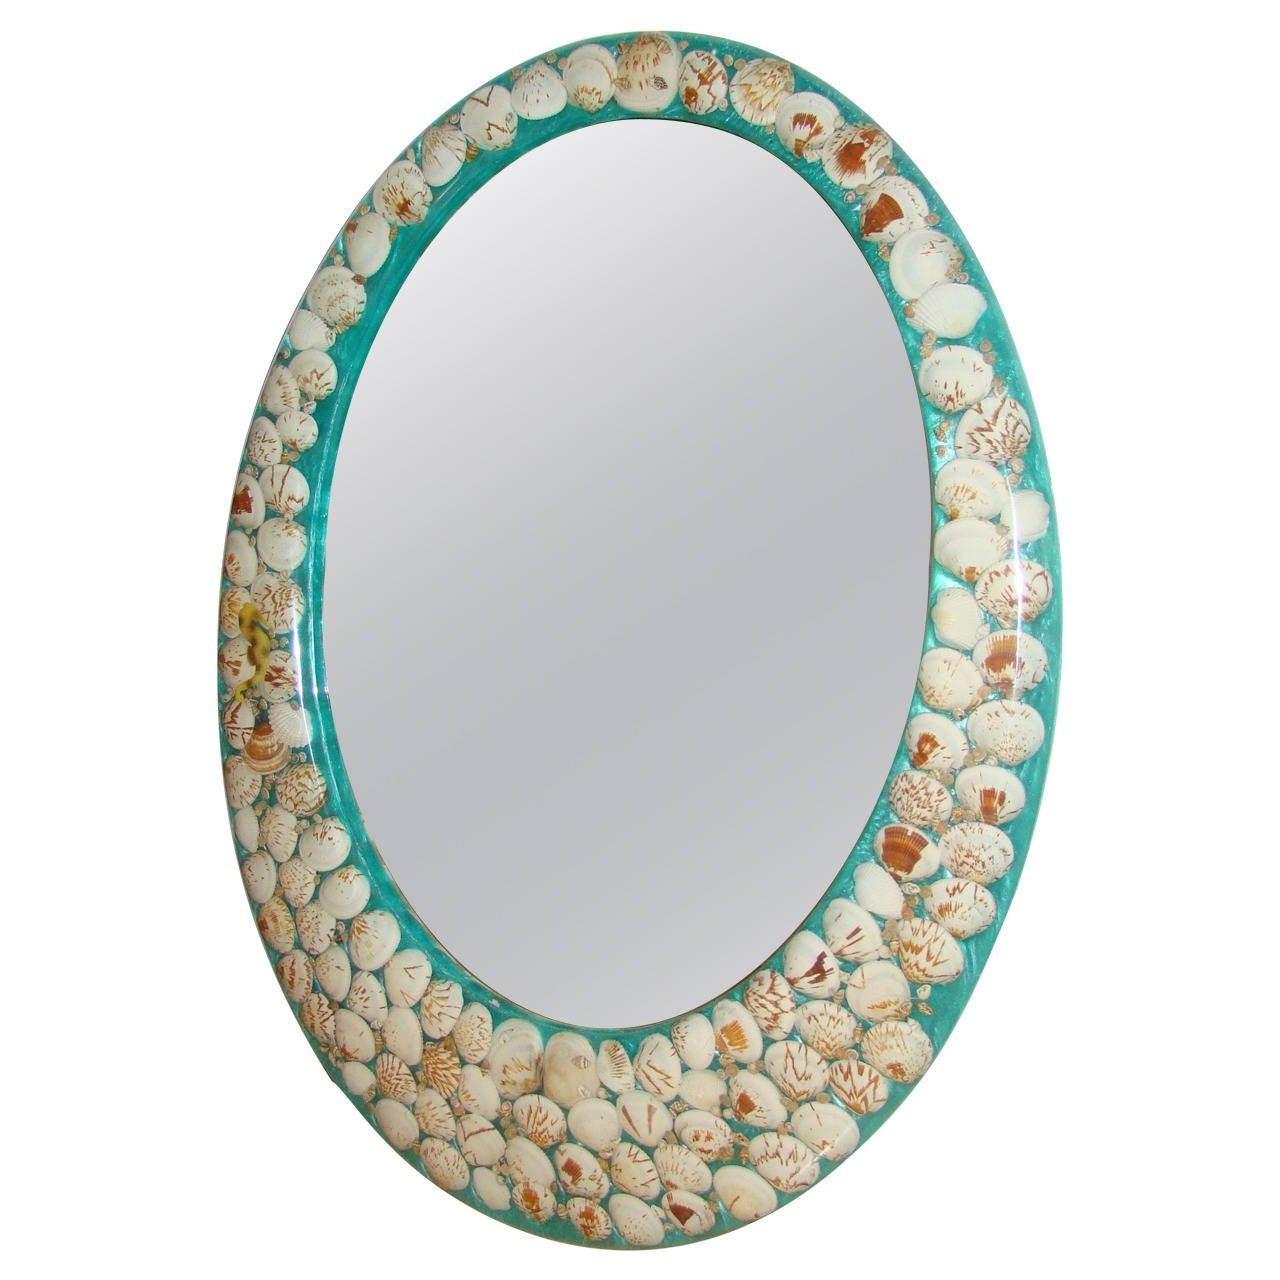 Lucite sea shell embedded oval wall hanging mirror at 1stdibs for Hanging mirror